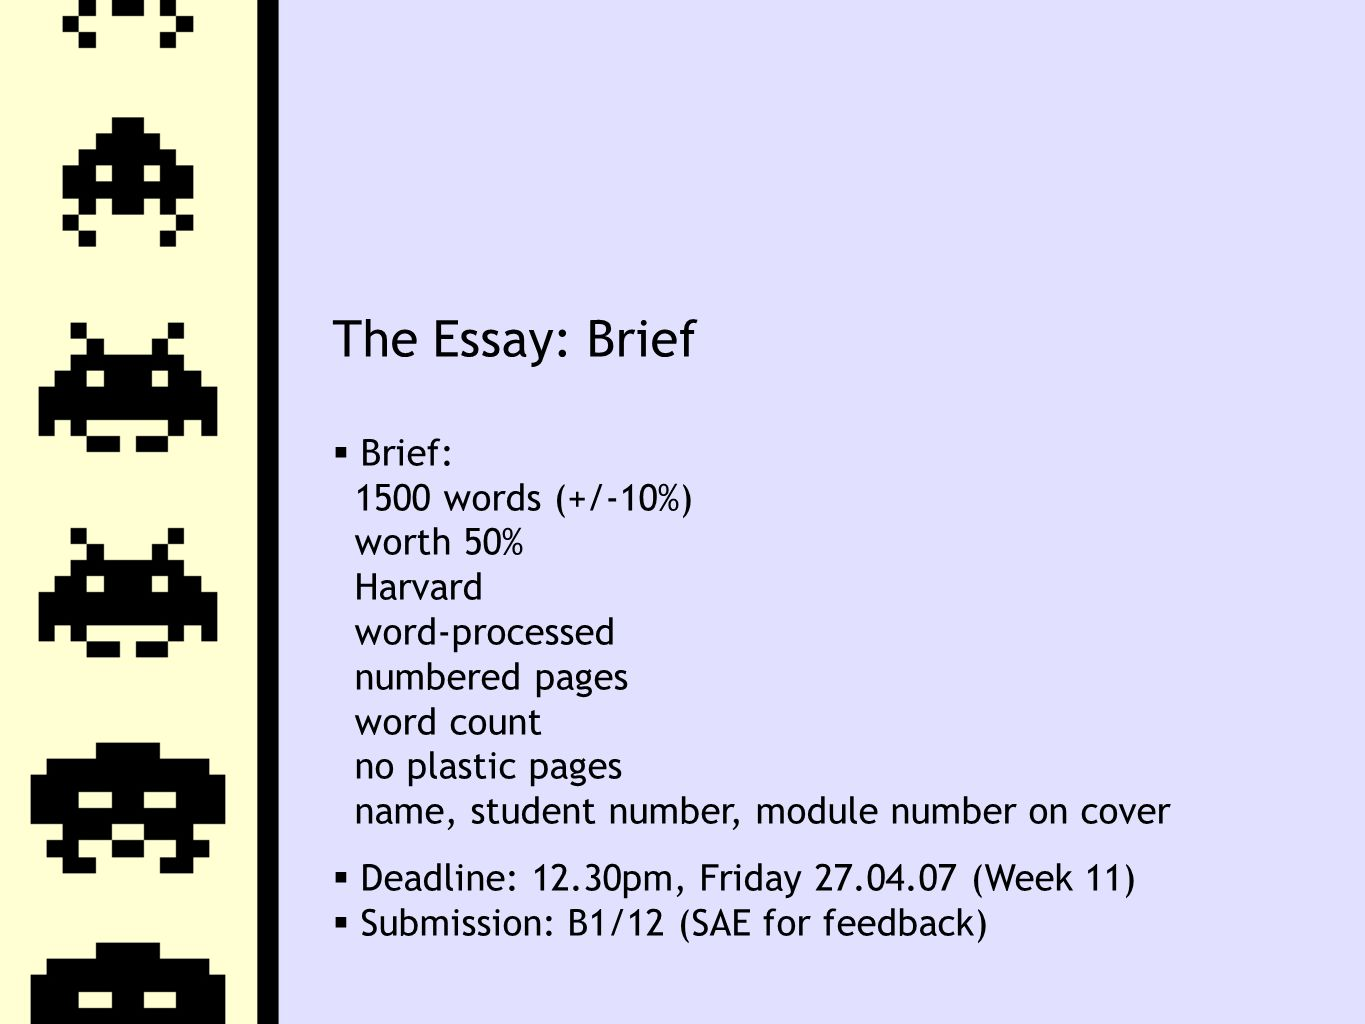 The Essay: Brief  Brief: 1500 words (+/-10%) worth 50% Harvard word-processed numbered pages word count no plastic pages name, student number, module number on cover  Deadline: 12.30pm, Friday 27.04.07 (Week 11)  Submission: B1/12 (SAE for feedback)